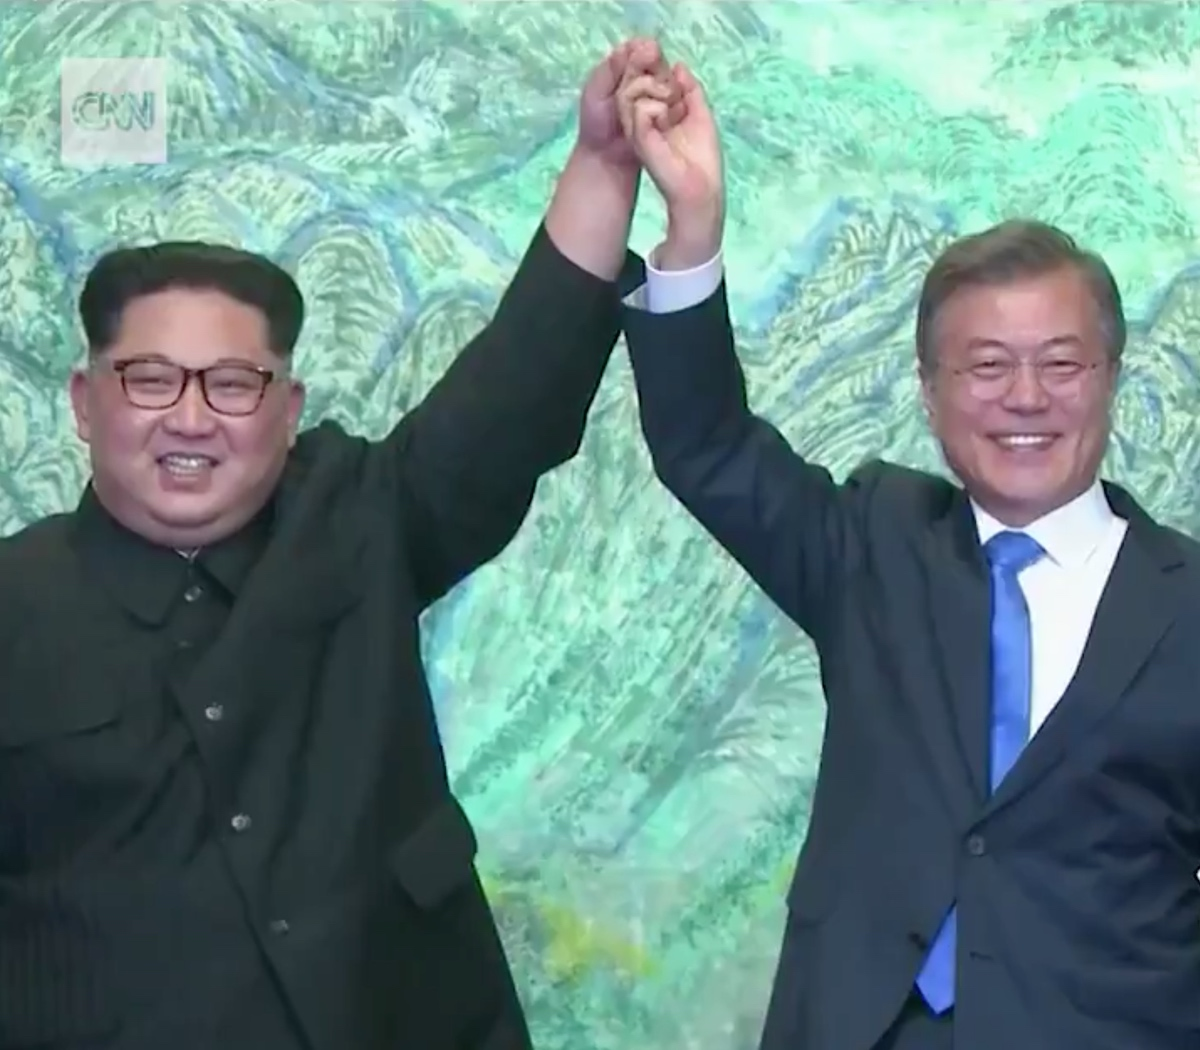 Kim Jong-un and Moon Jae-in, leaders of the two Koreas, at a meeting on April 27, 2018